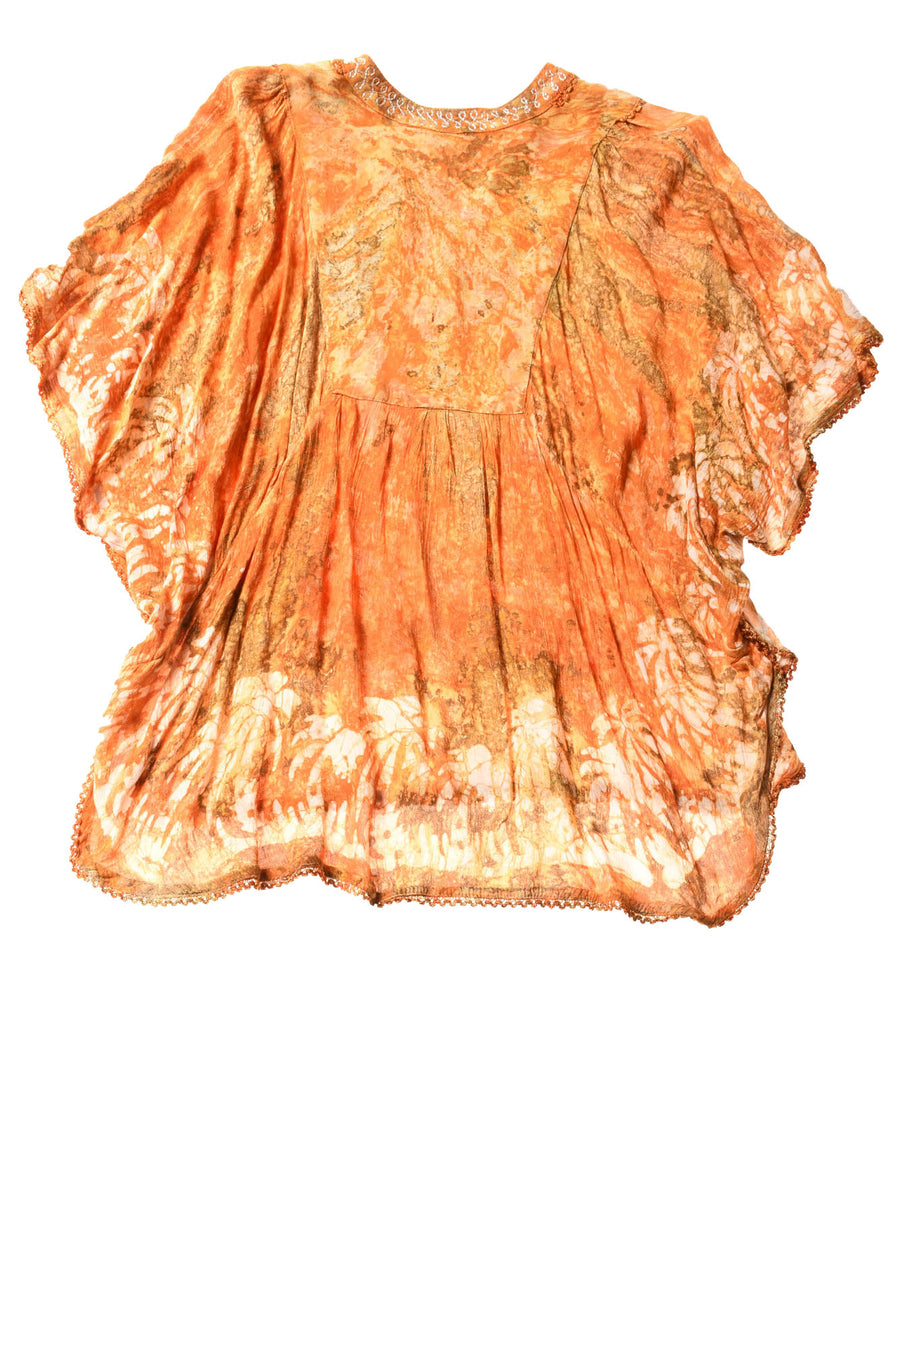 USED Fashion Telmihal Women's Top One Size Orange